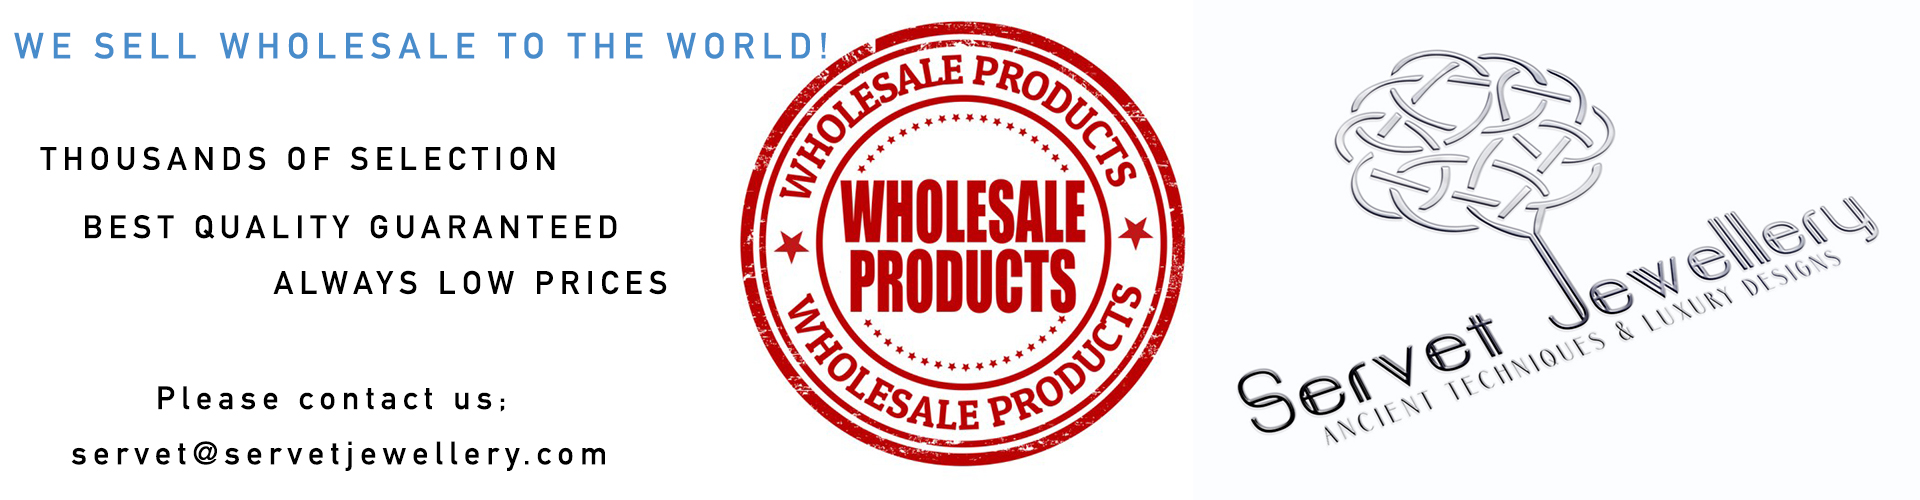 wholesale-banner